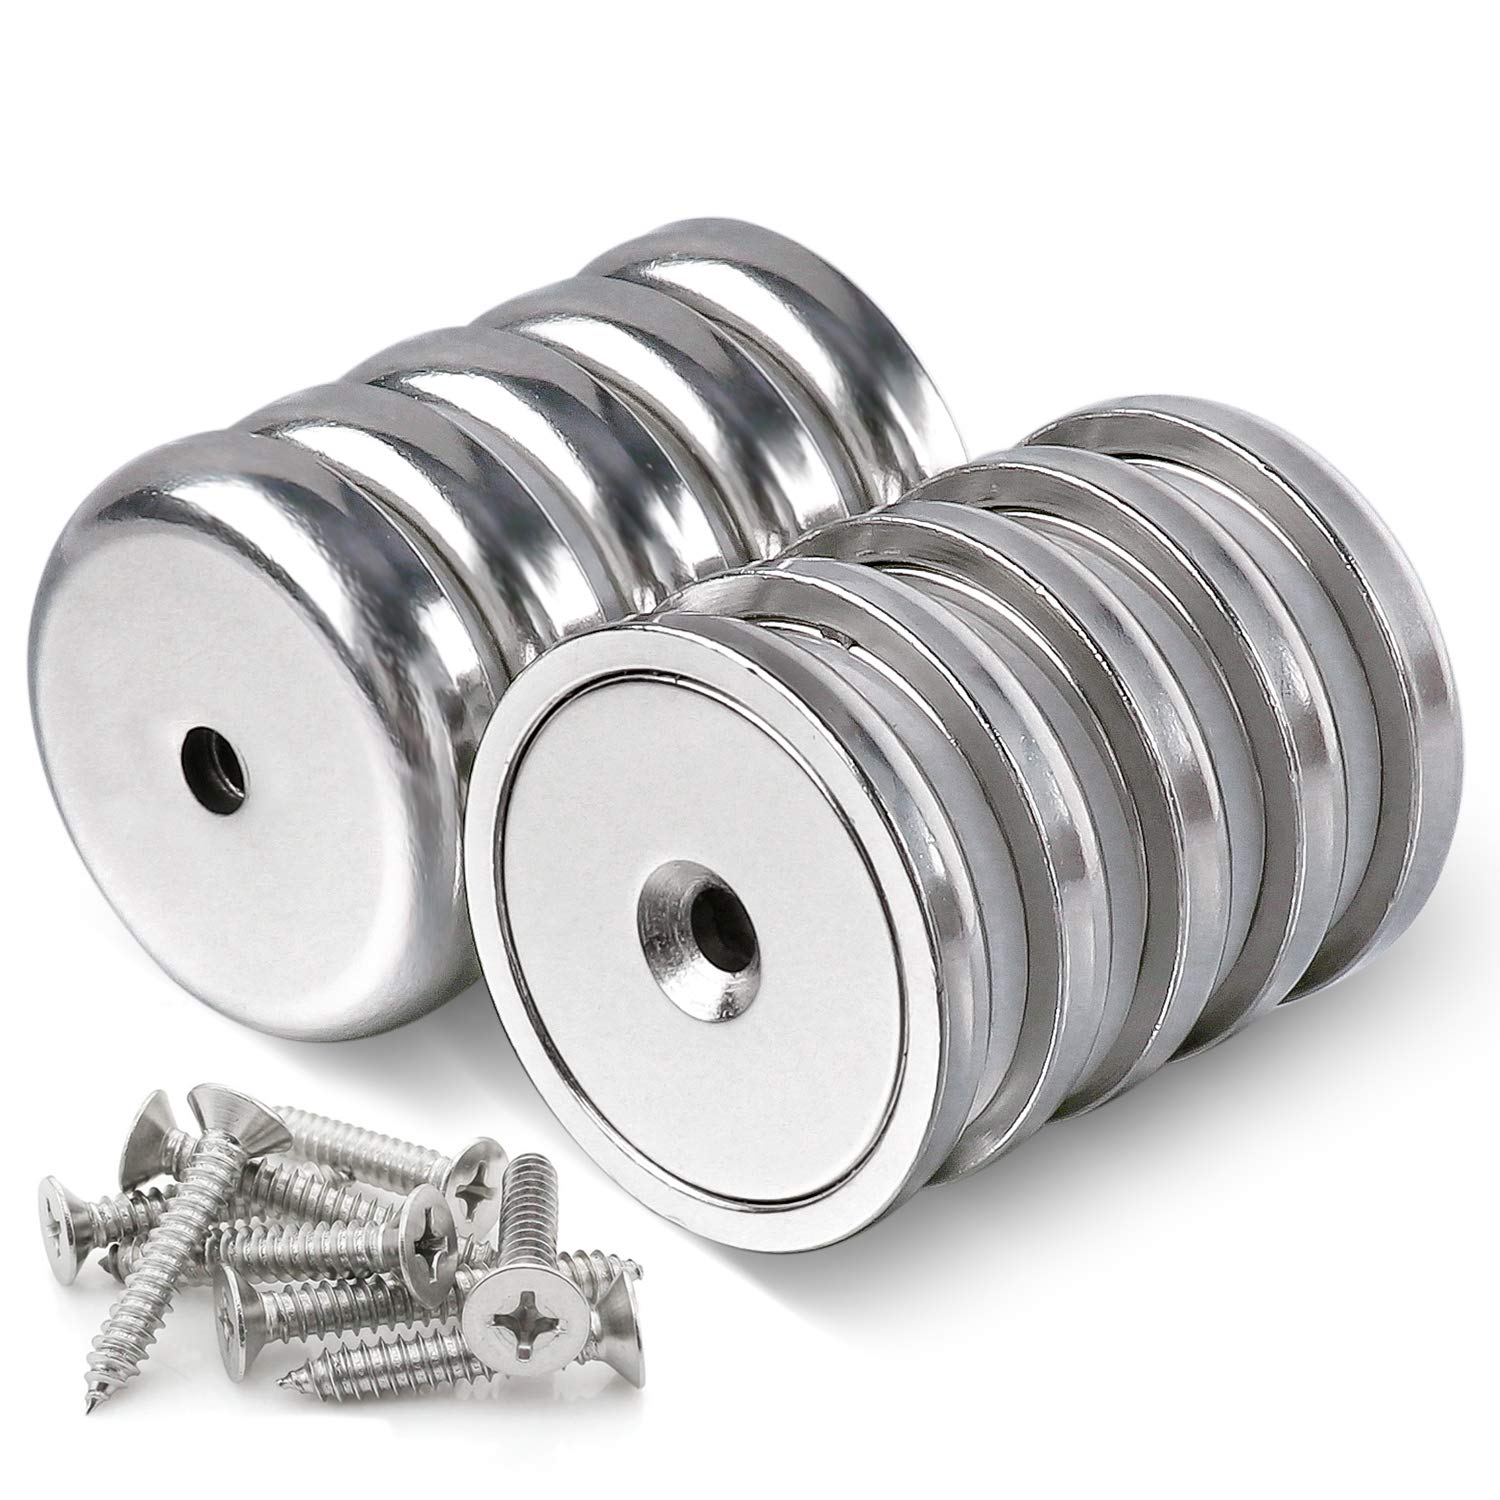 Super Power Neodymium Cup Magnets with 95 LBS Pull Capacity Each, 1.26 inch - Pack of 10